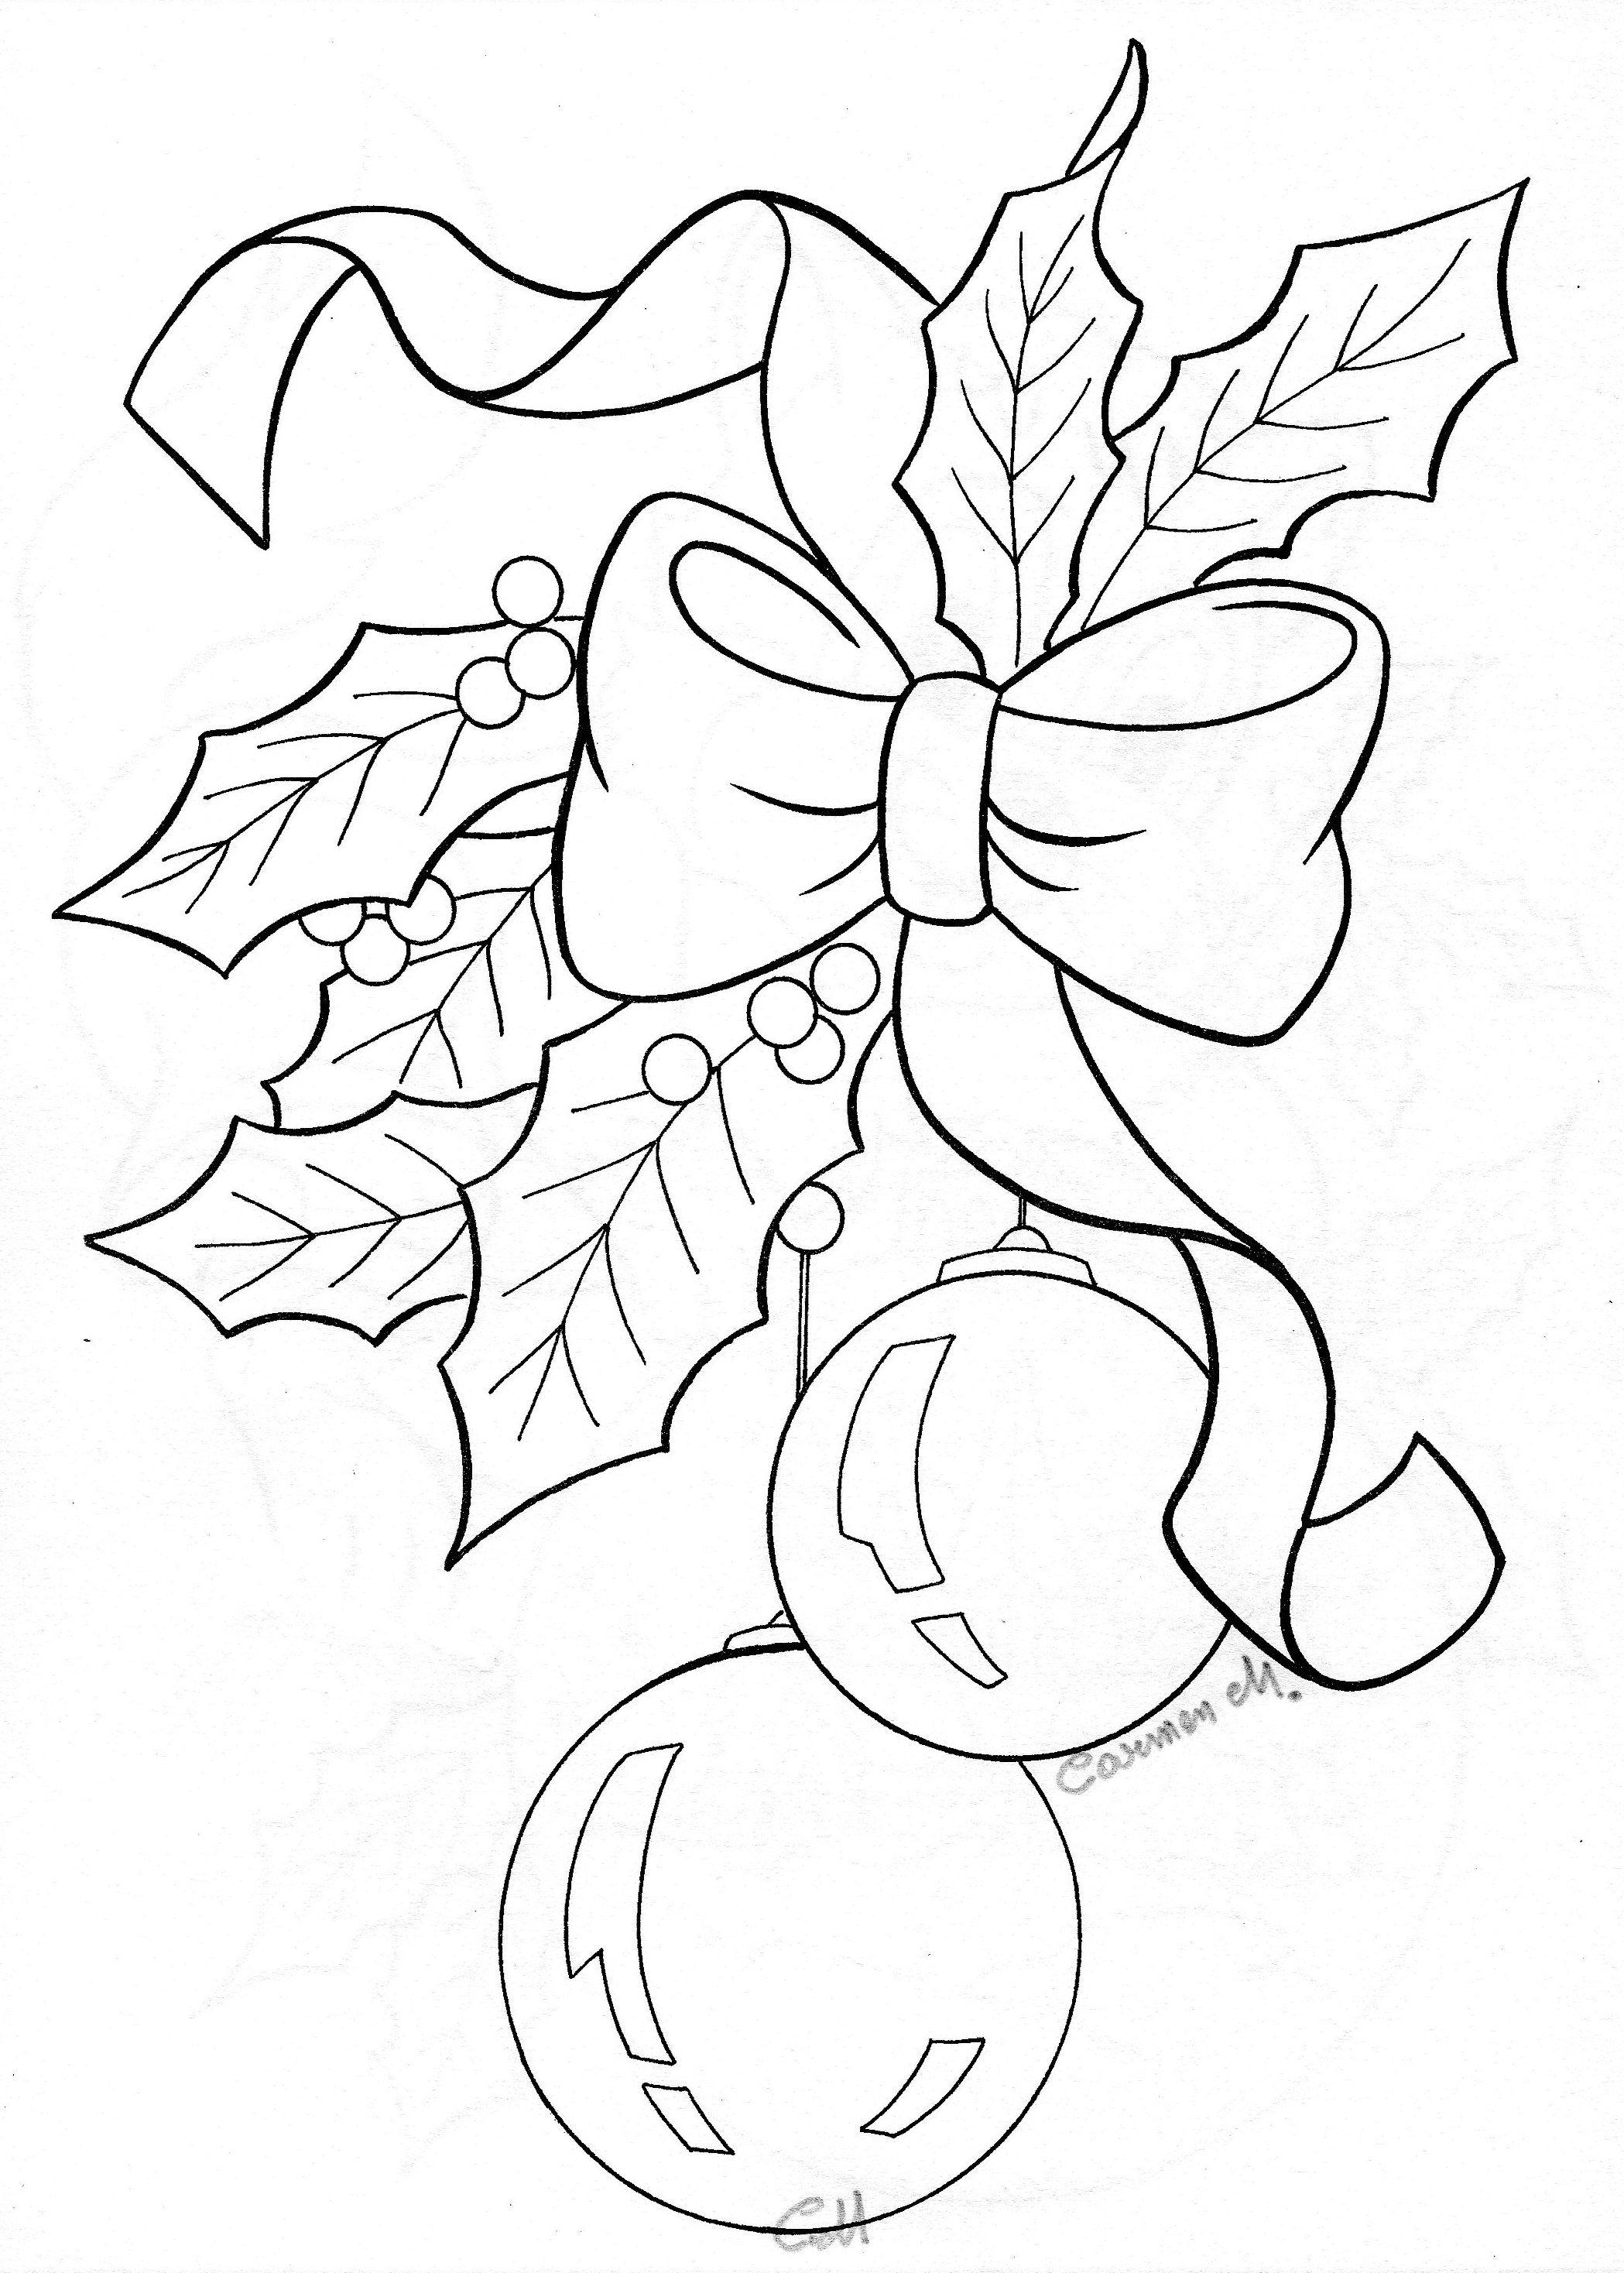 Bow Holly Ornaments Sketch Coloring Collections Pinterest